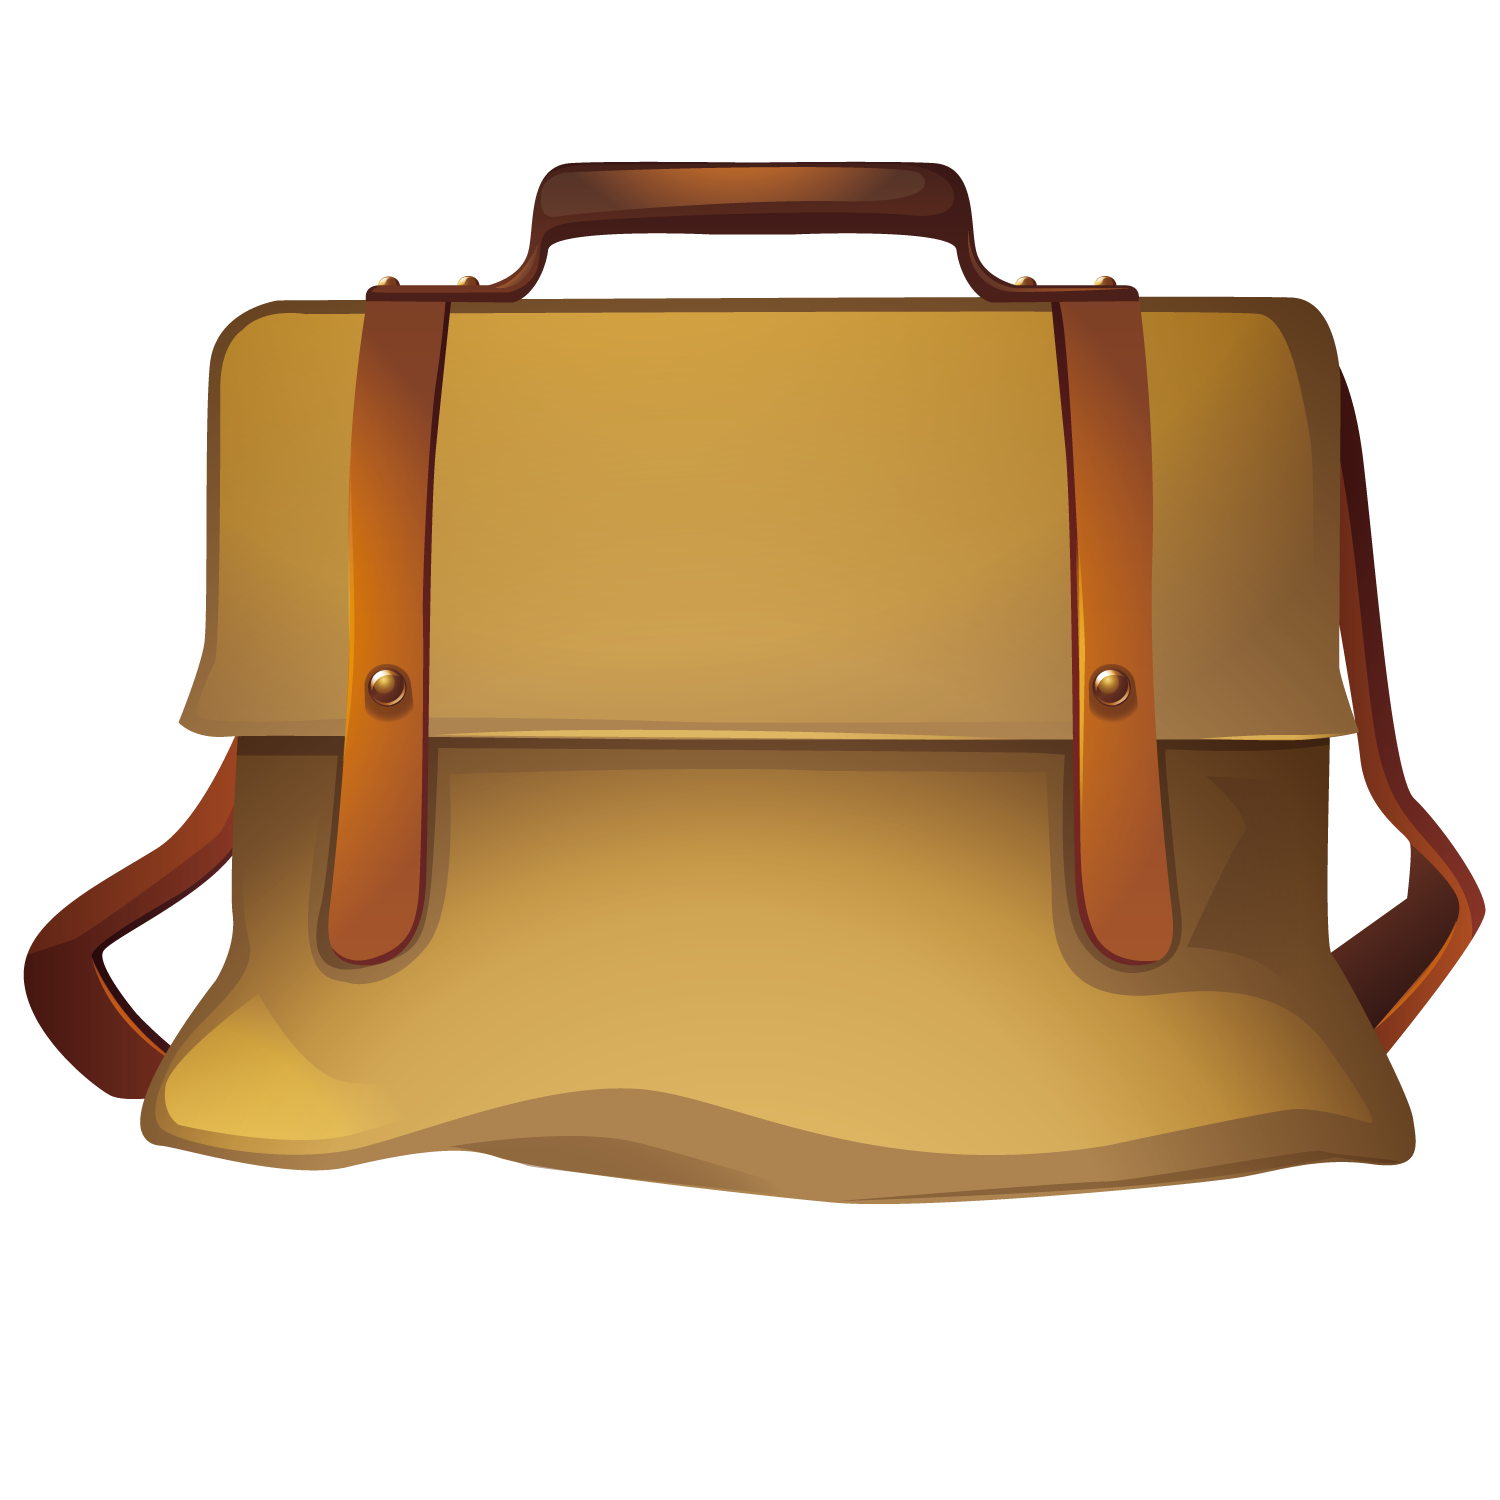 Briefcase clipart cartoon. Lady with bag of